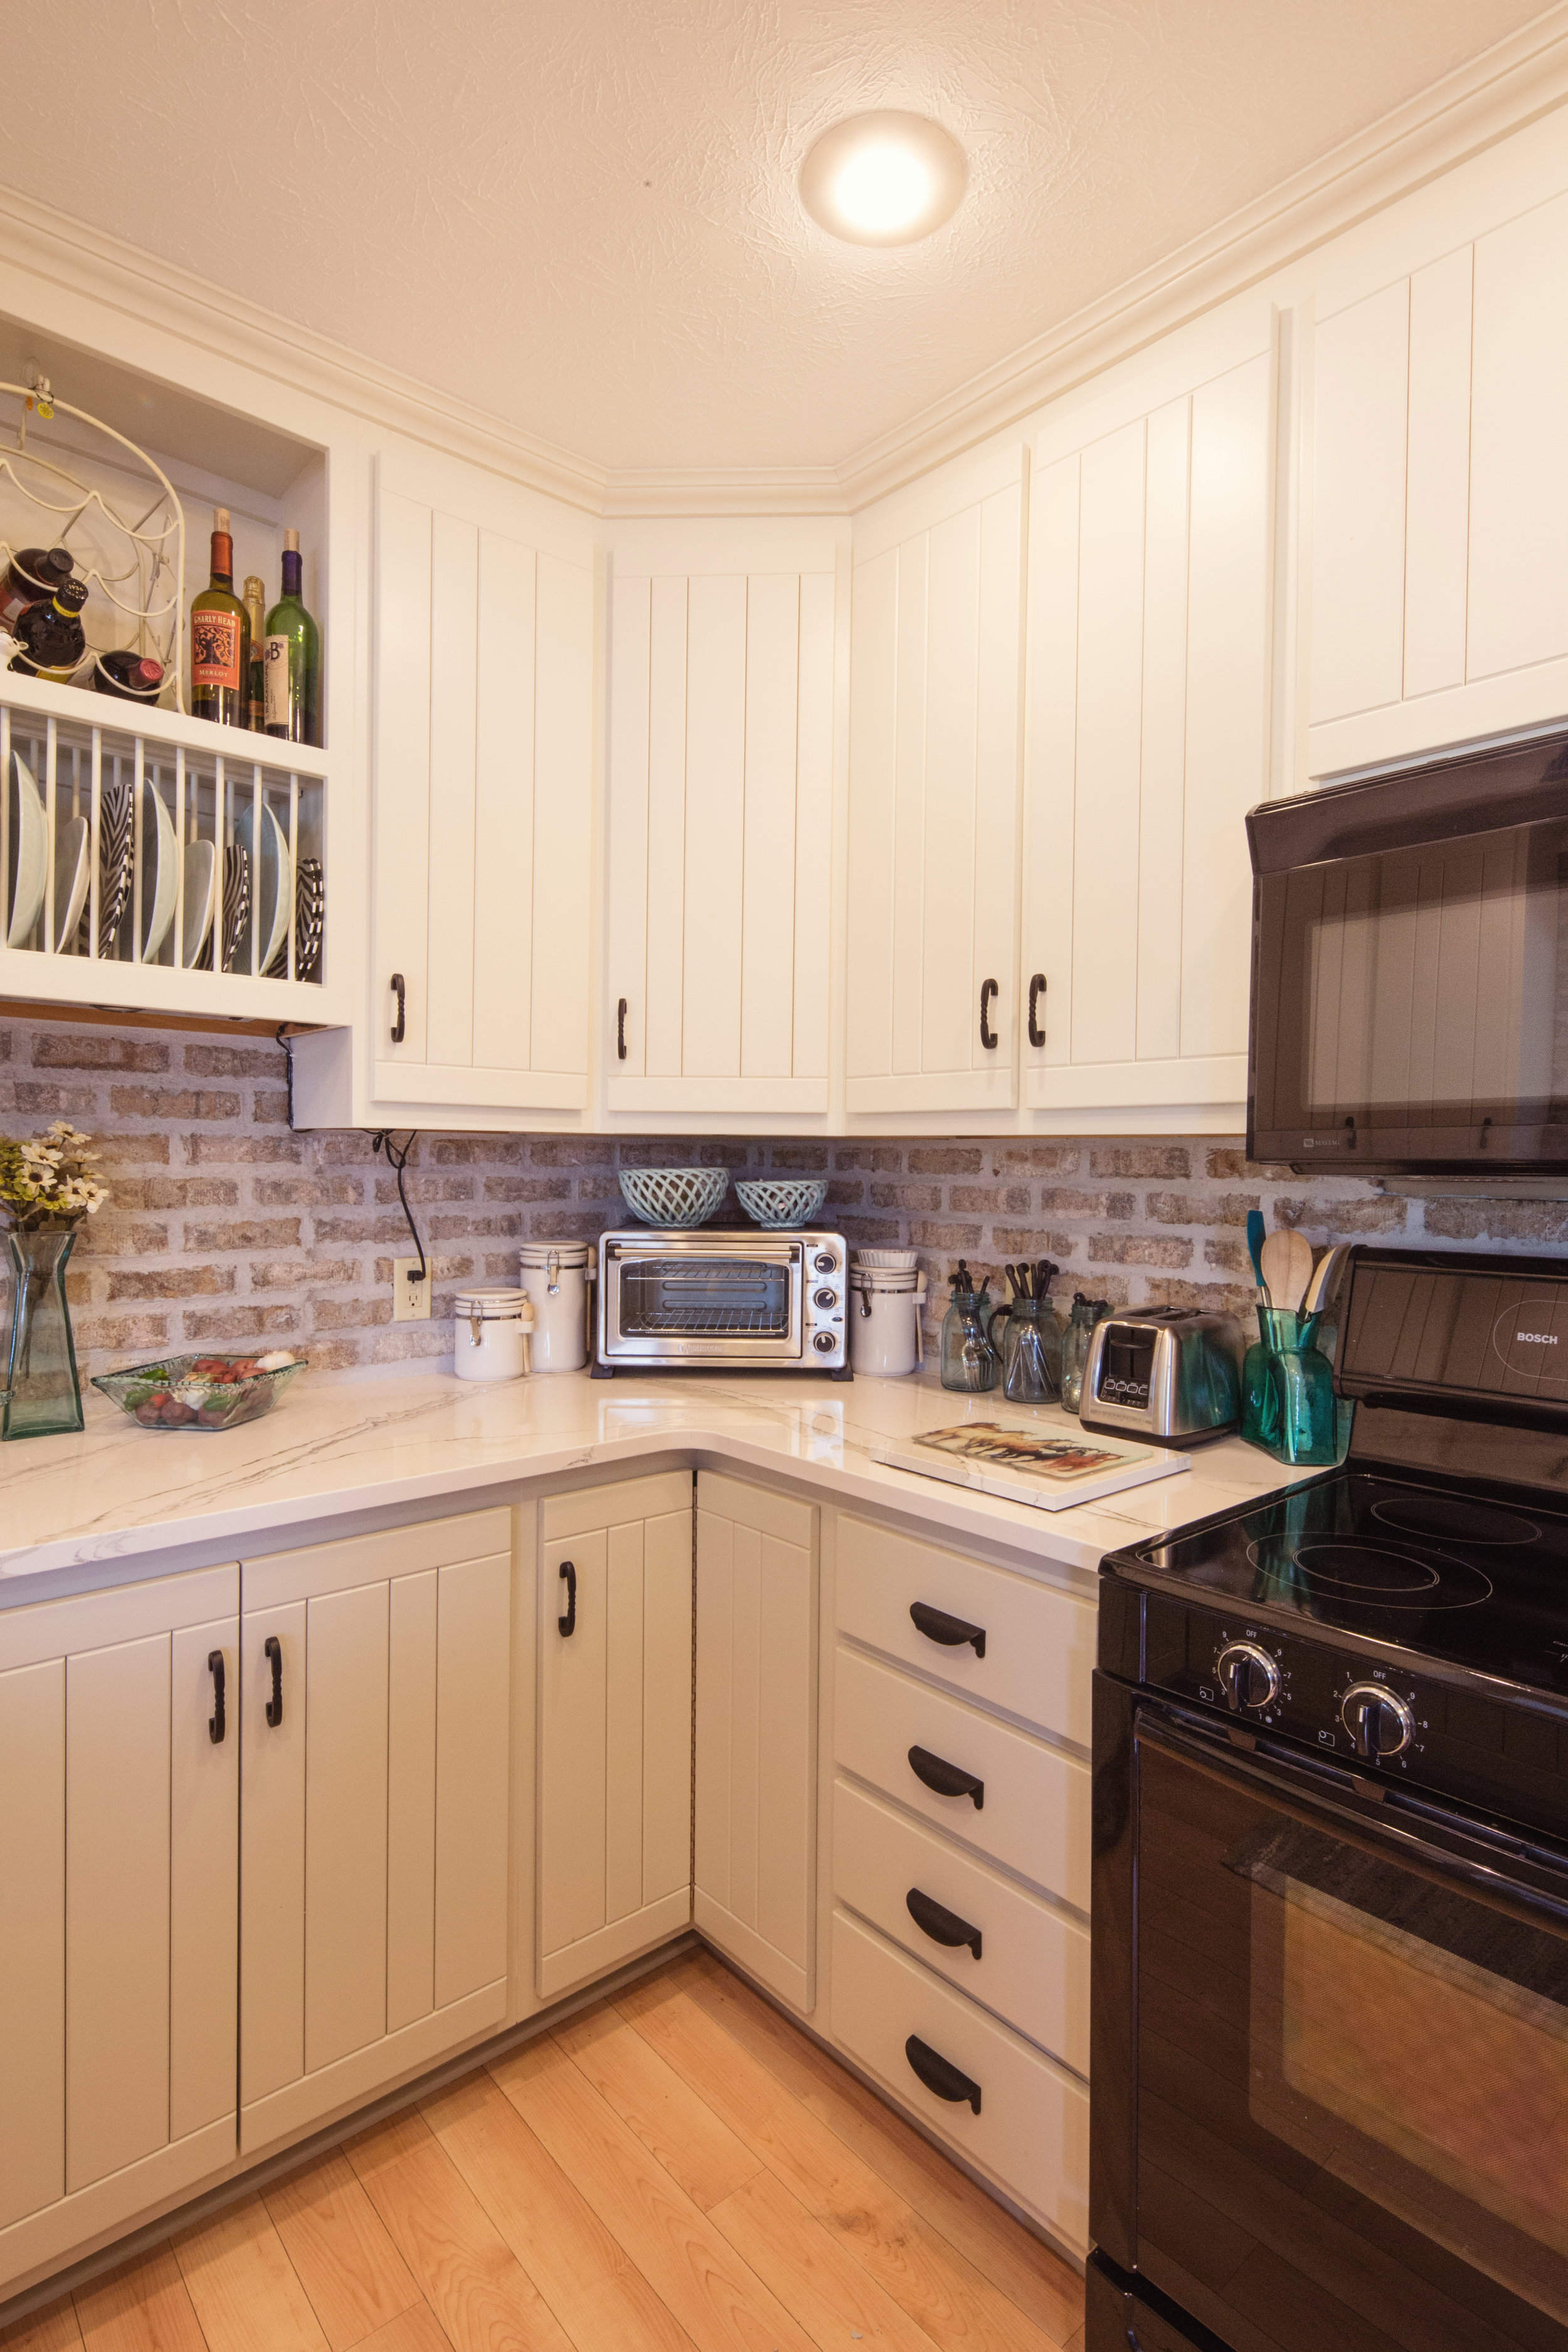 color-theory-painting-cabinets-7.jpg